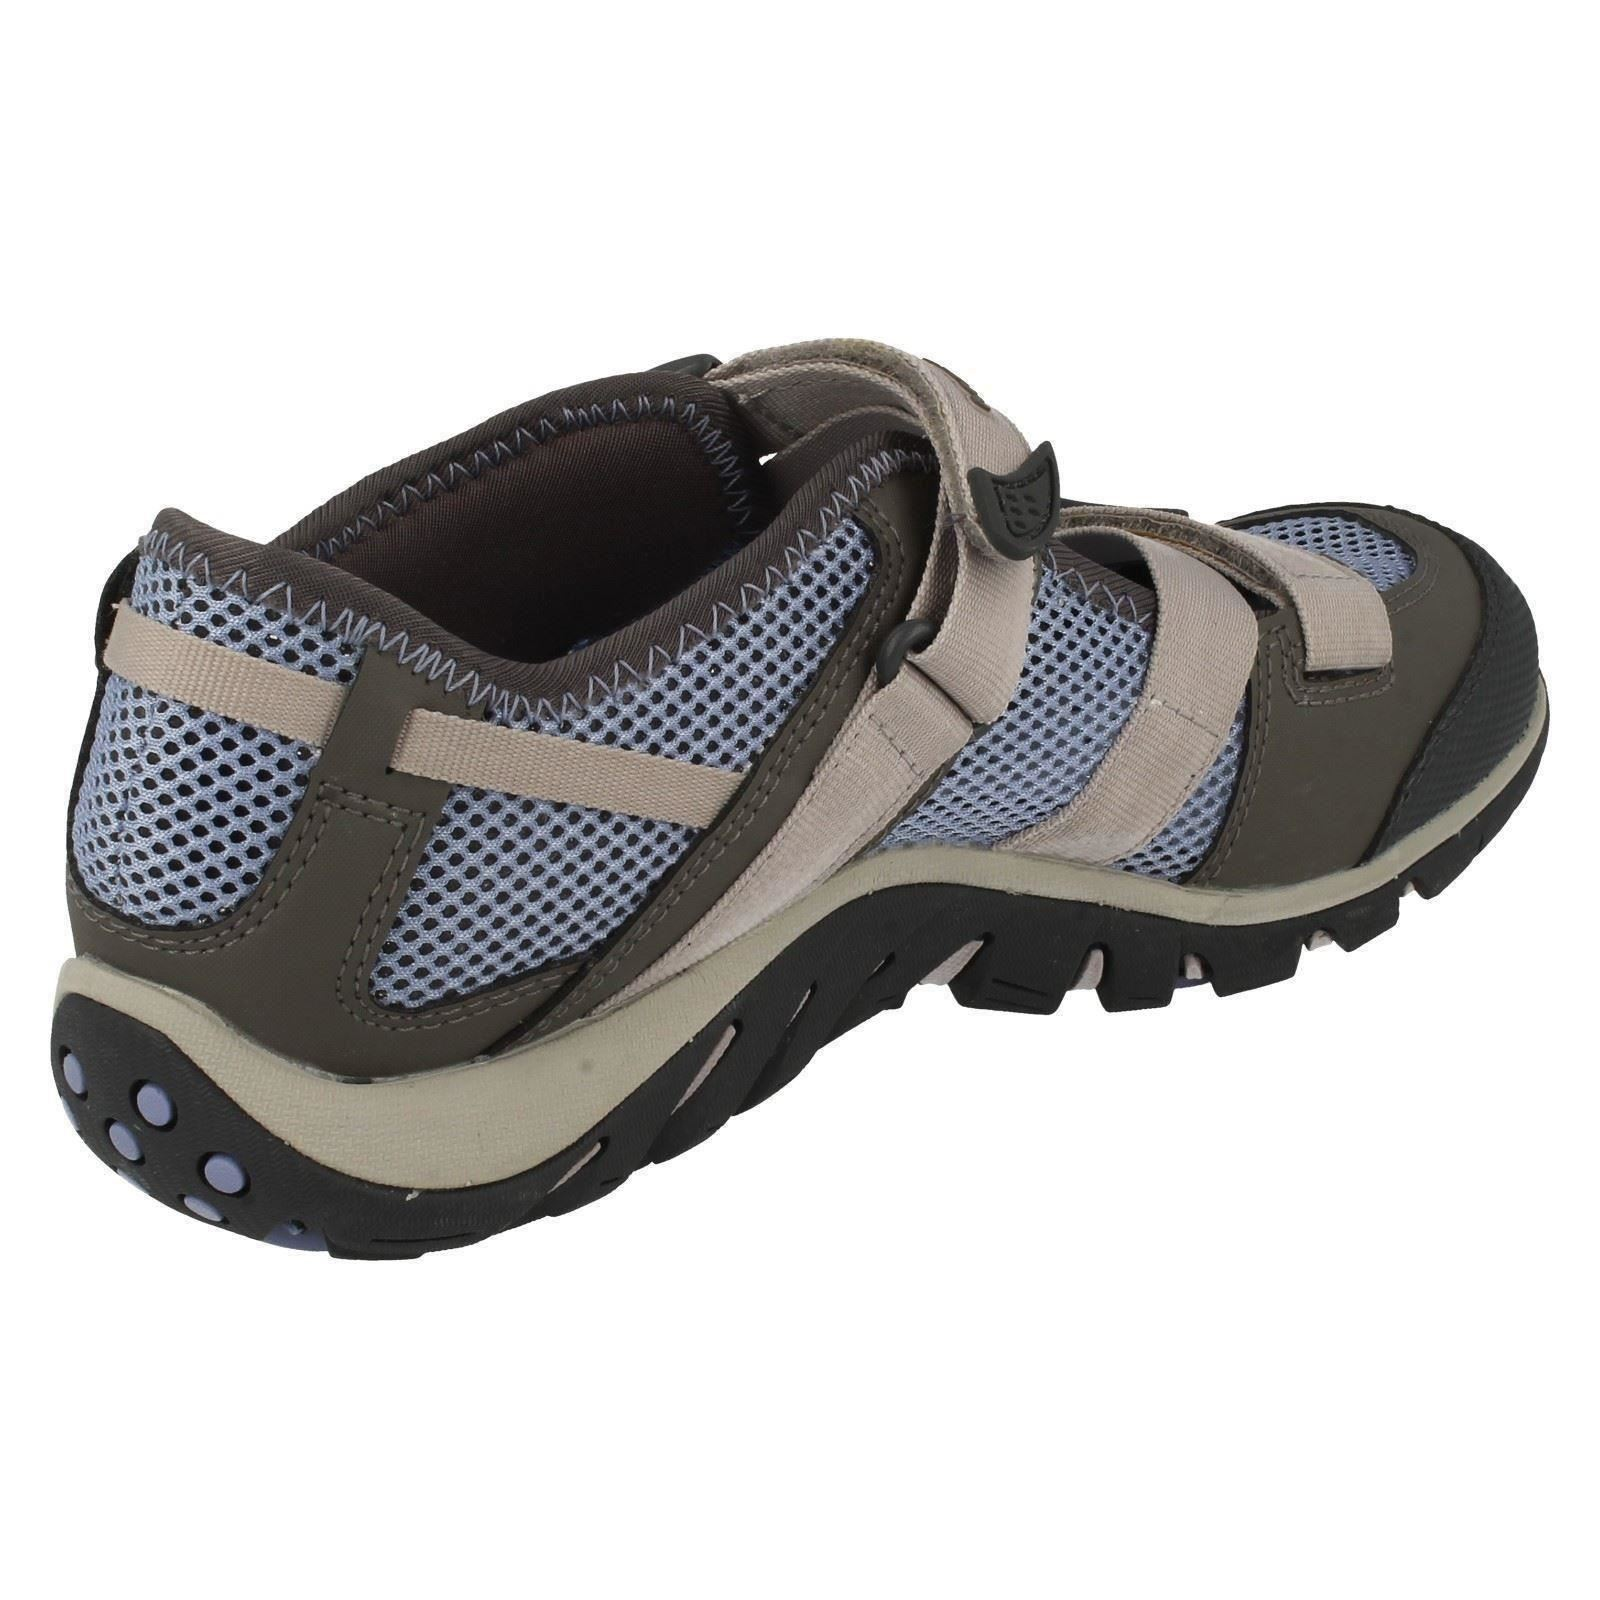 Unique And Enjoy The Outdoors With The Merrell Azura Wrap Closedtoe Sandal